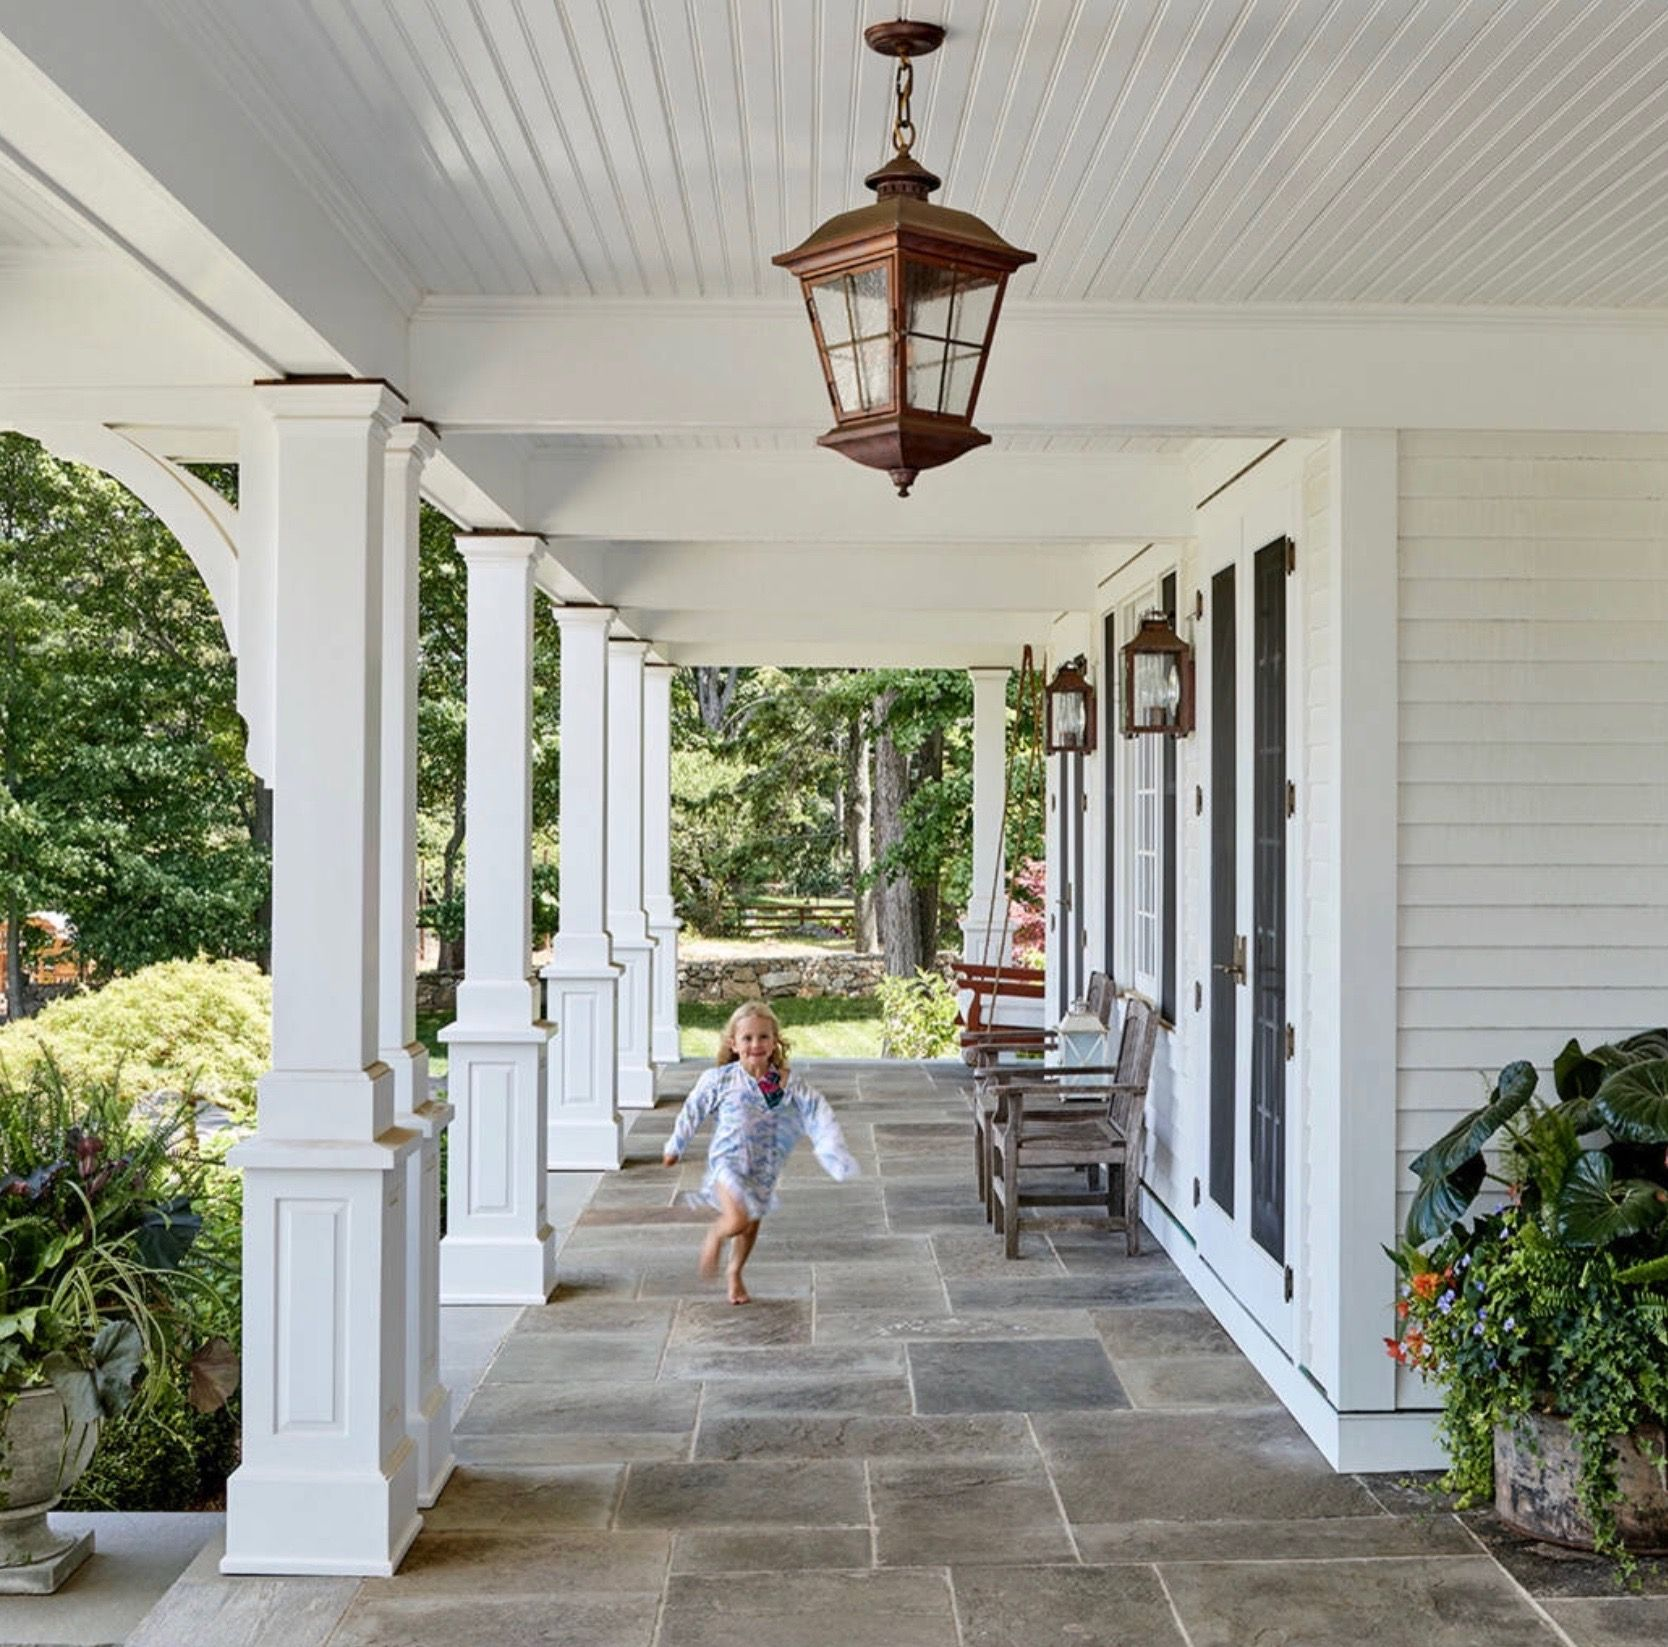 Pin By Misty Evans On Porches Patio House With Porch House Front Porch House Exterior